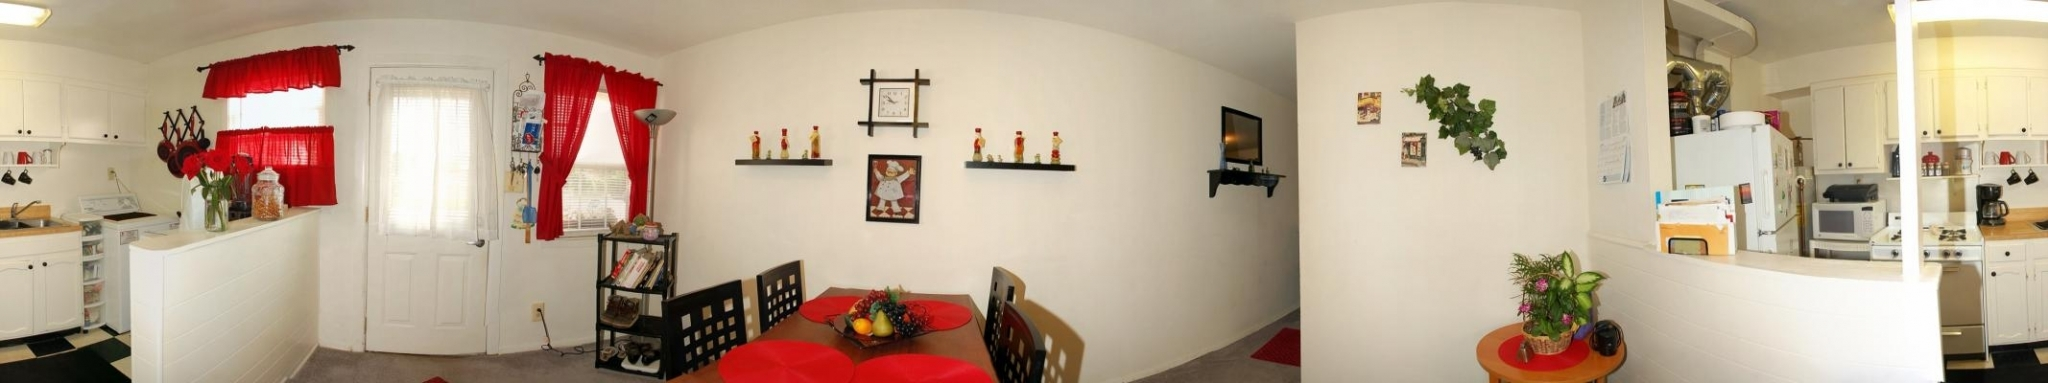 Dining Room/Kitchen 1